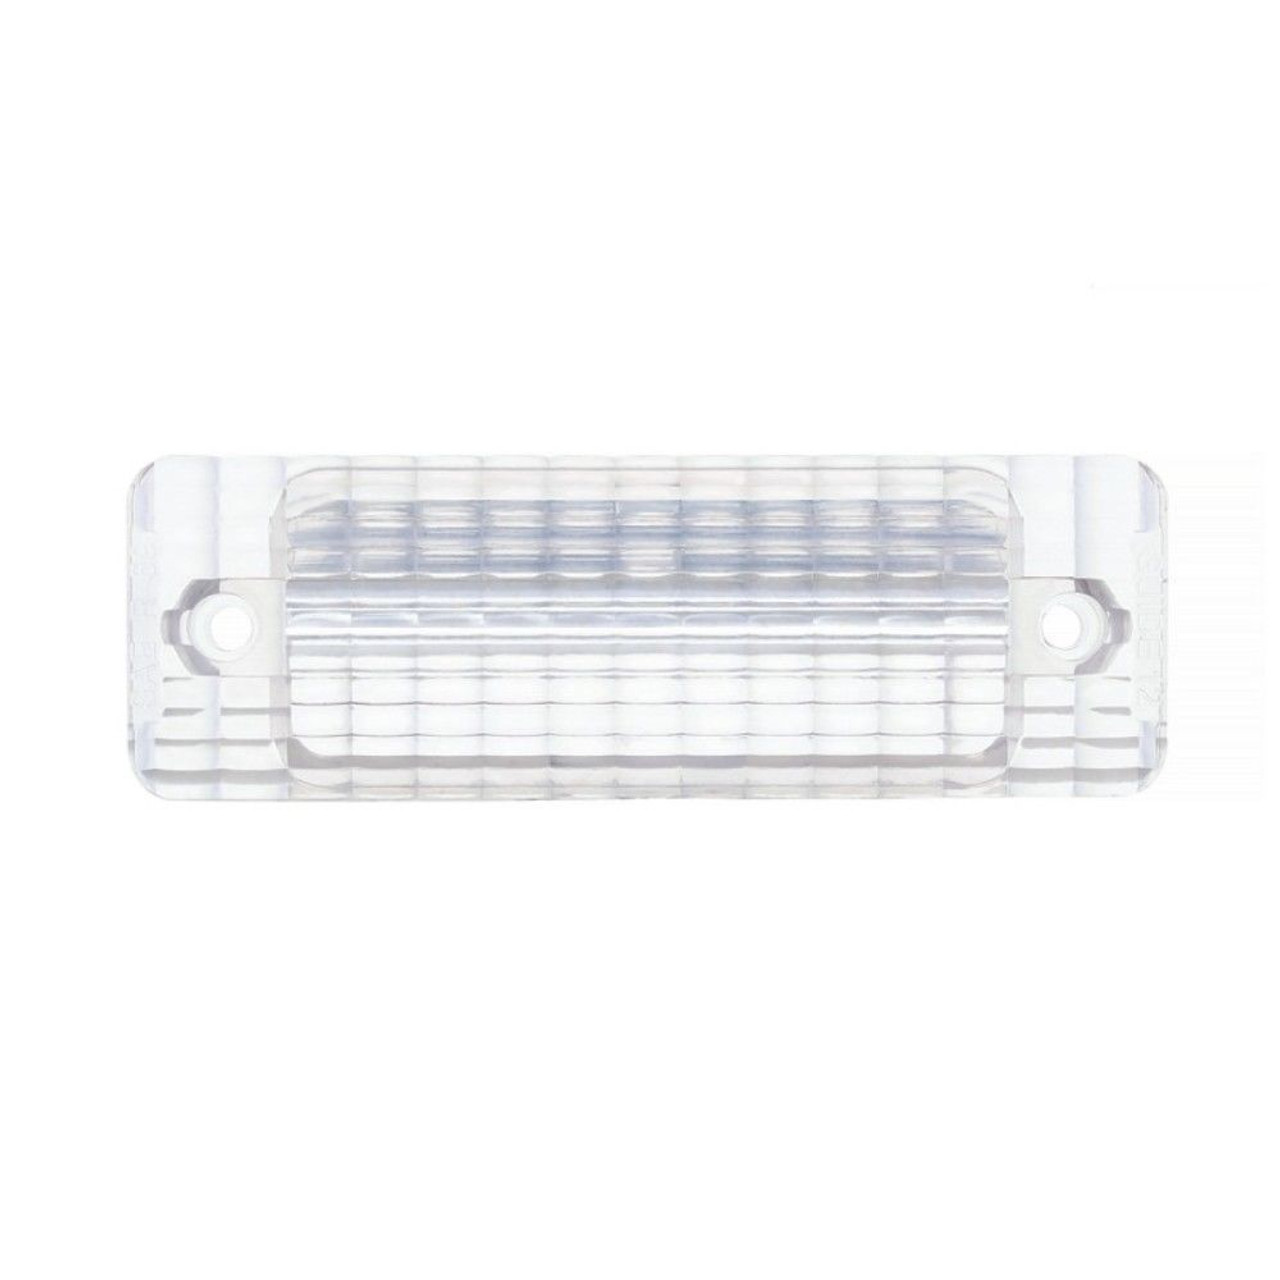 69-72 Truck Cargo Light Lens, Compatible with Chevy/GMC, 69 Camaro RS Backup Lens